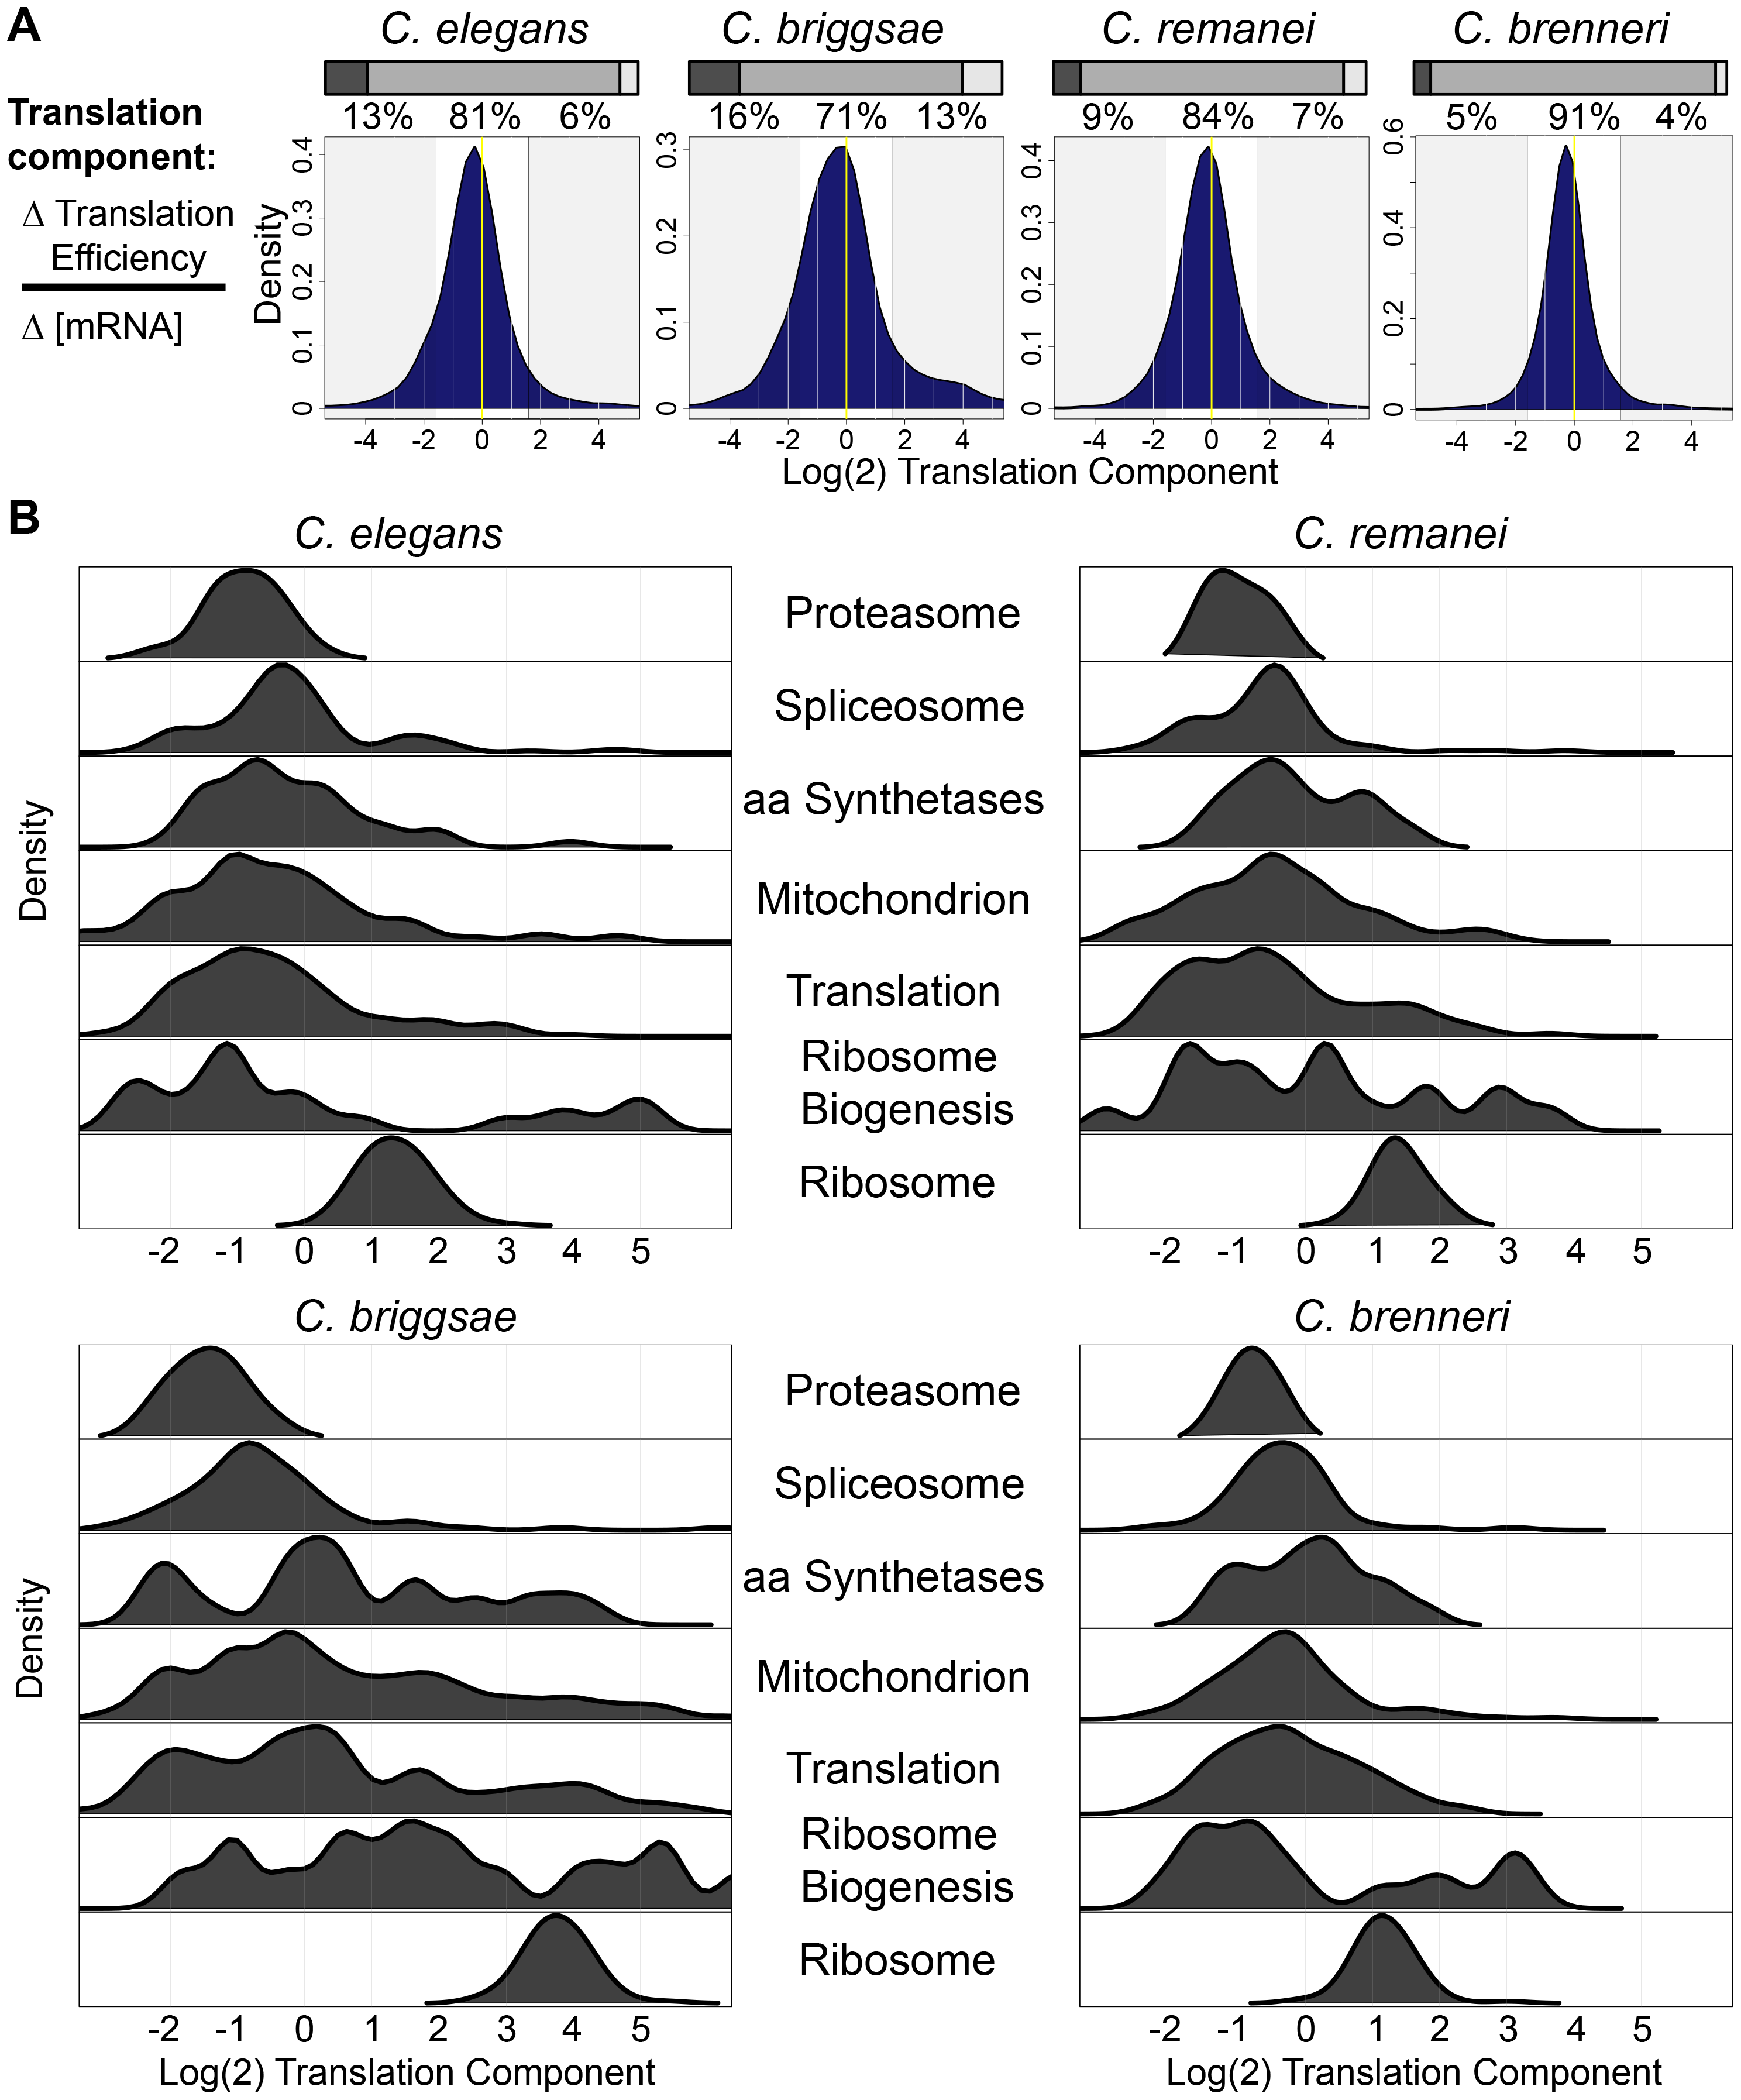 Functionally related gene sets are regulated by similar contributions of translational control and mRNA abundance changes in different species.